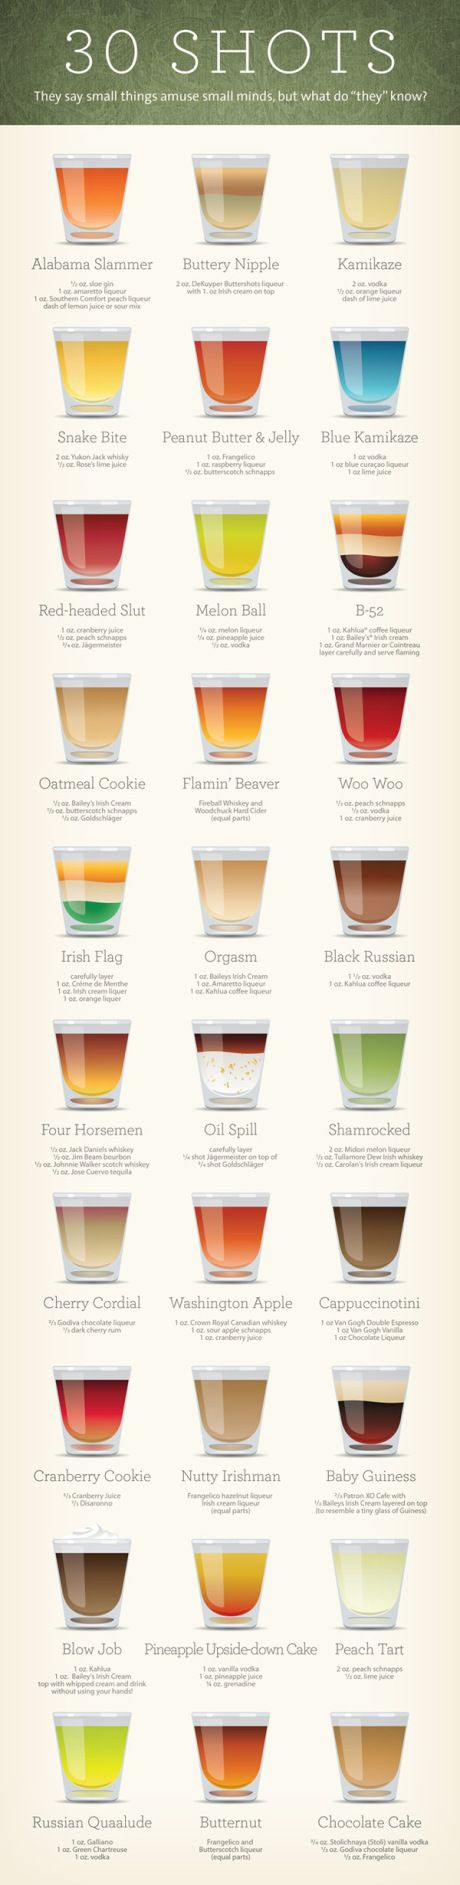 cool infogram: 30 shots by Donald Bullach; oh Leslie.....I hear cute shot glasses calling your name!!!